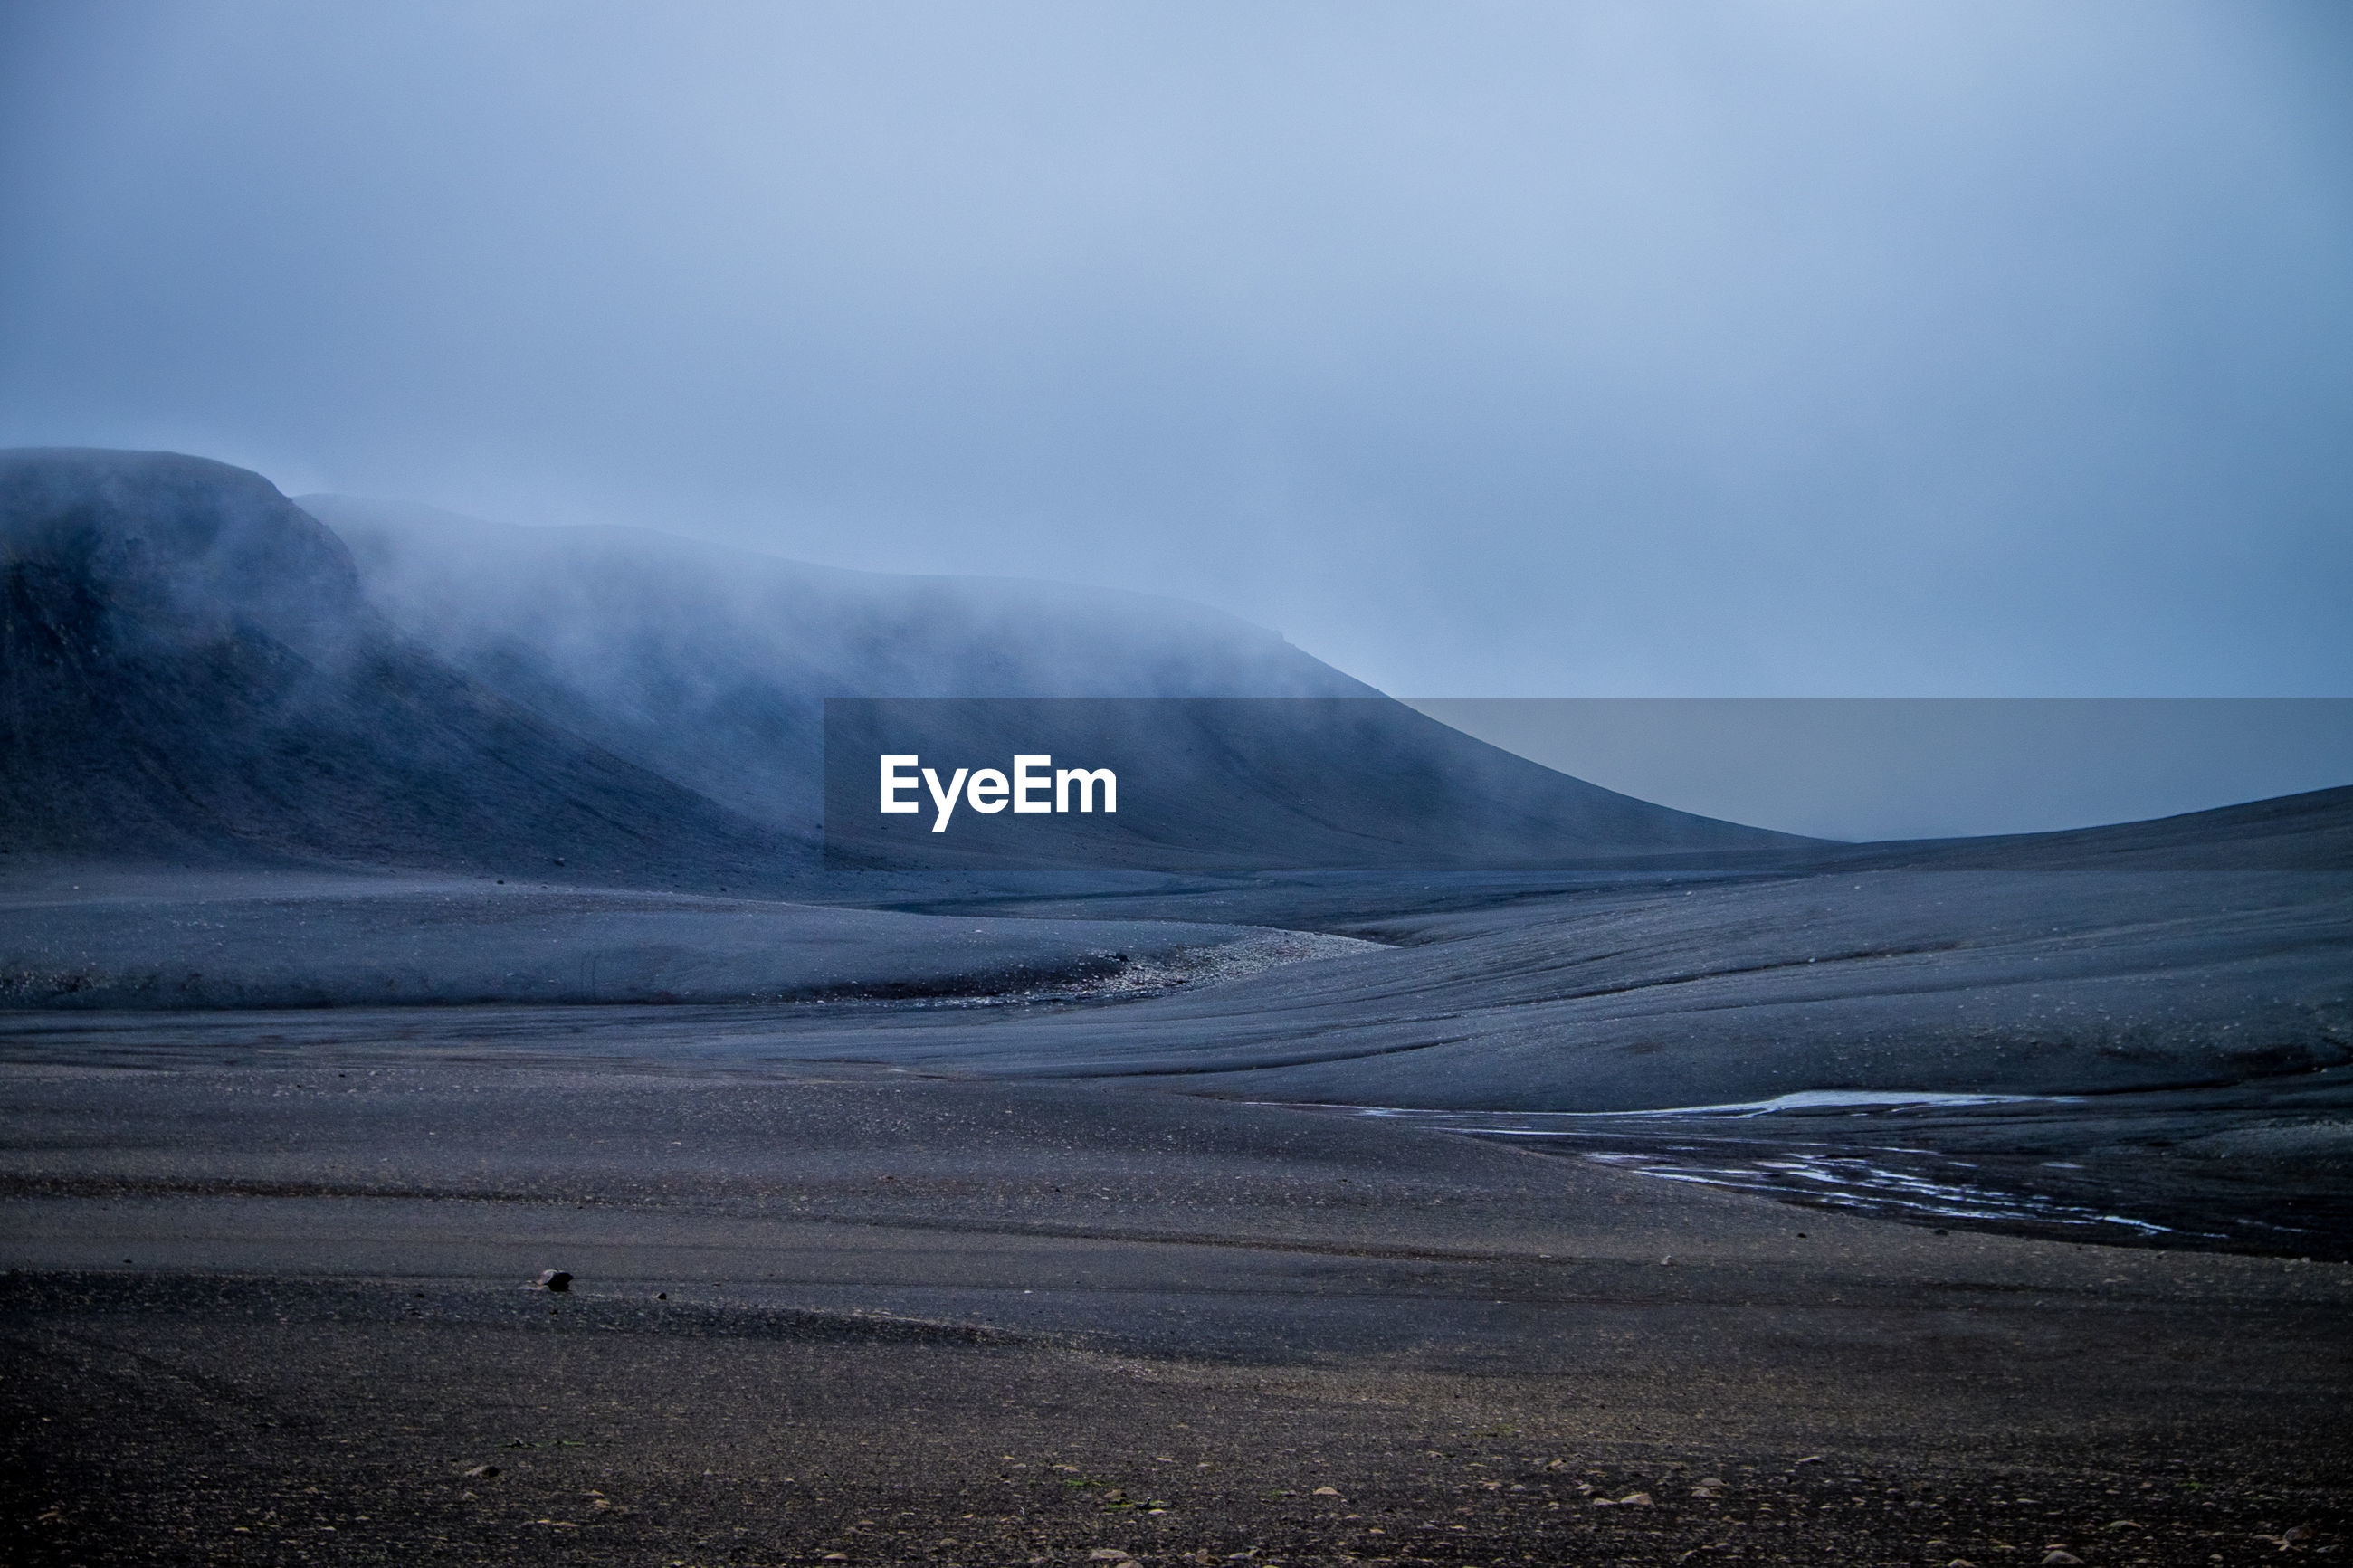 Scenic view of landscape and mountains against cloudy sky